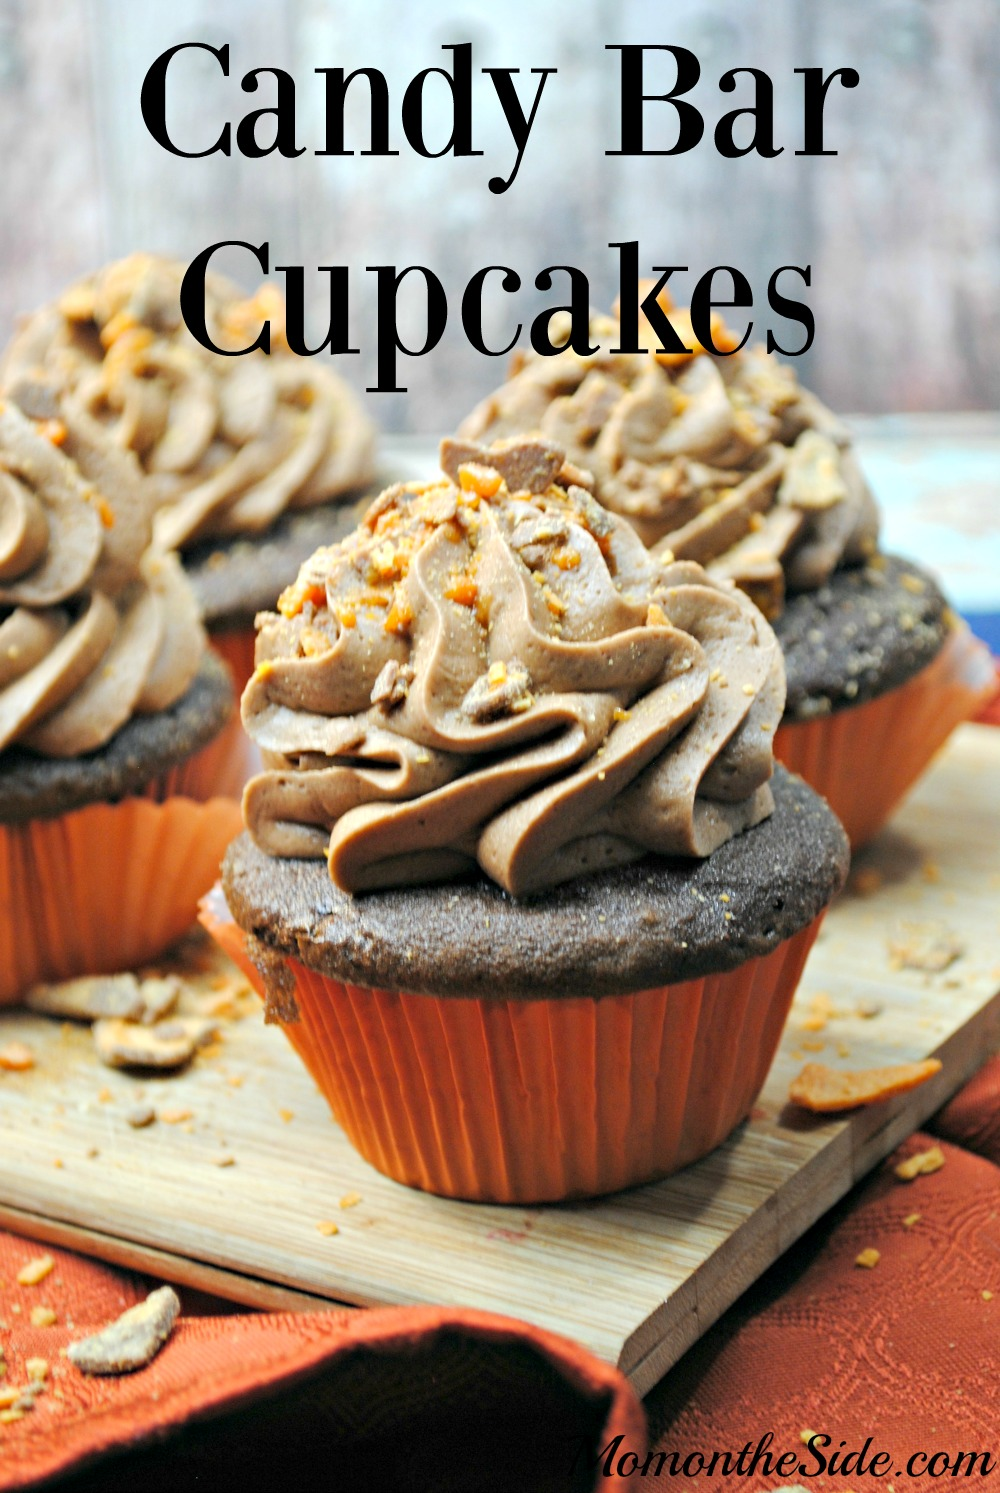 The Best Candy Bar Cupcakes Recipe for parties, baking with kids, and when you are craving chocolate!